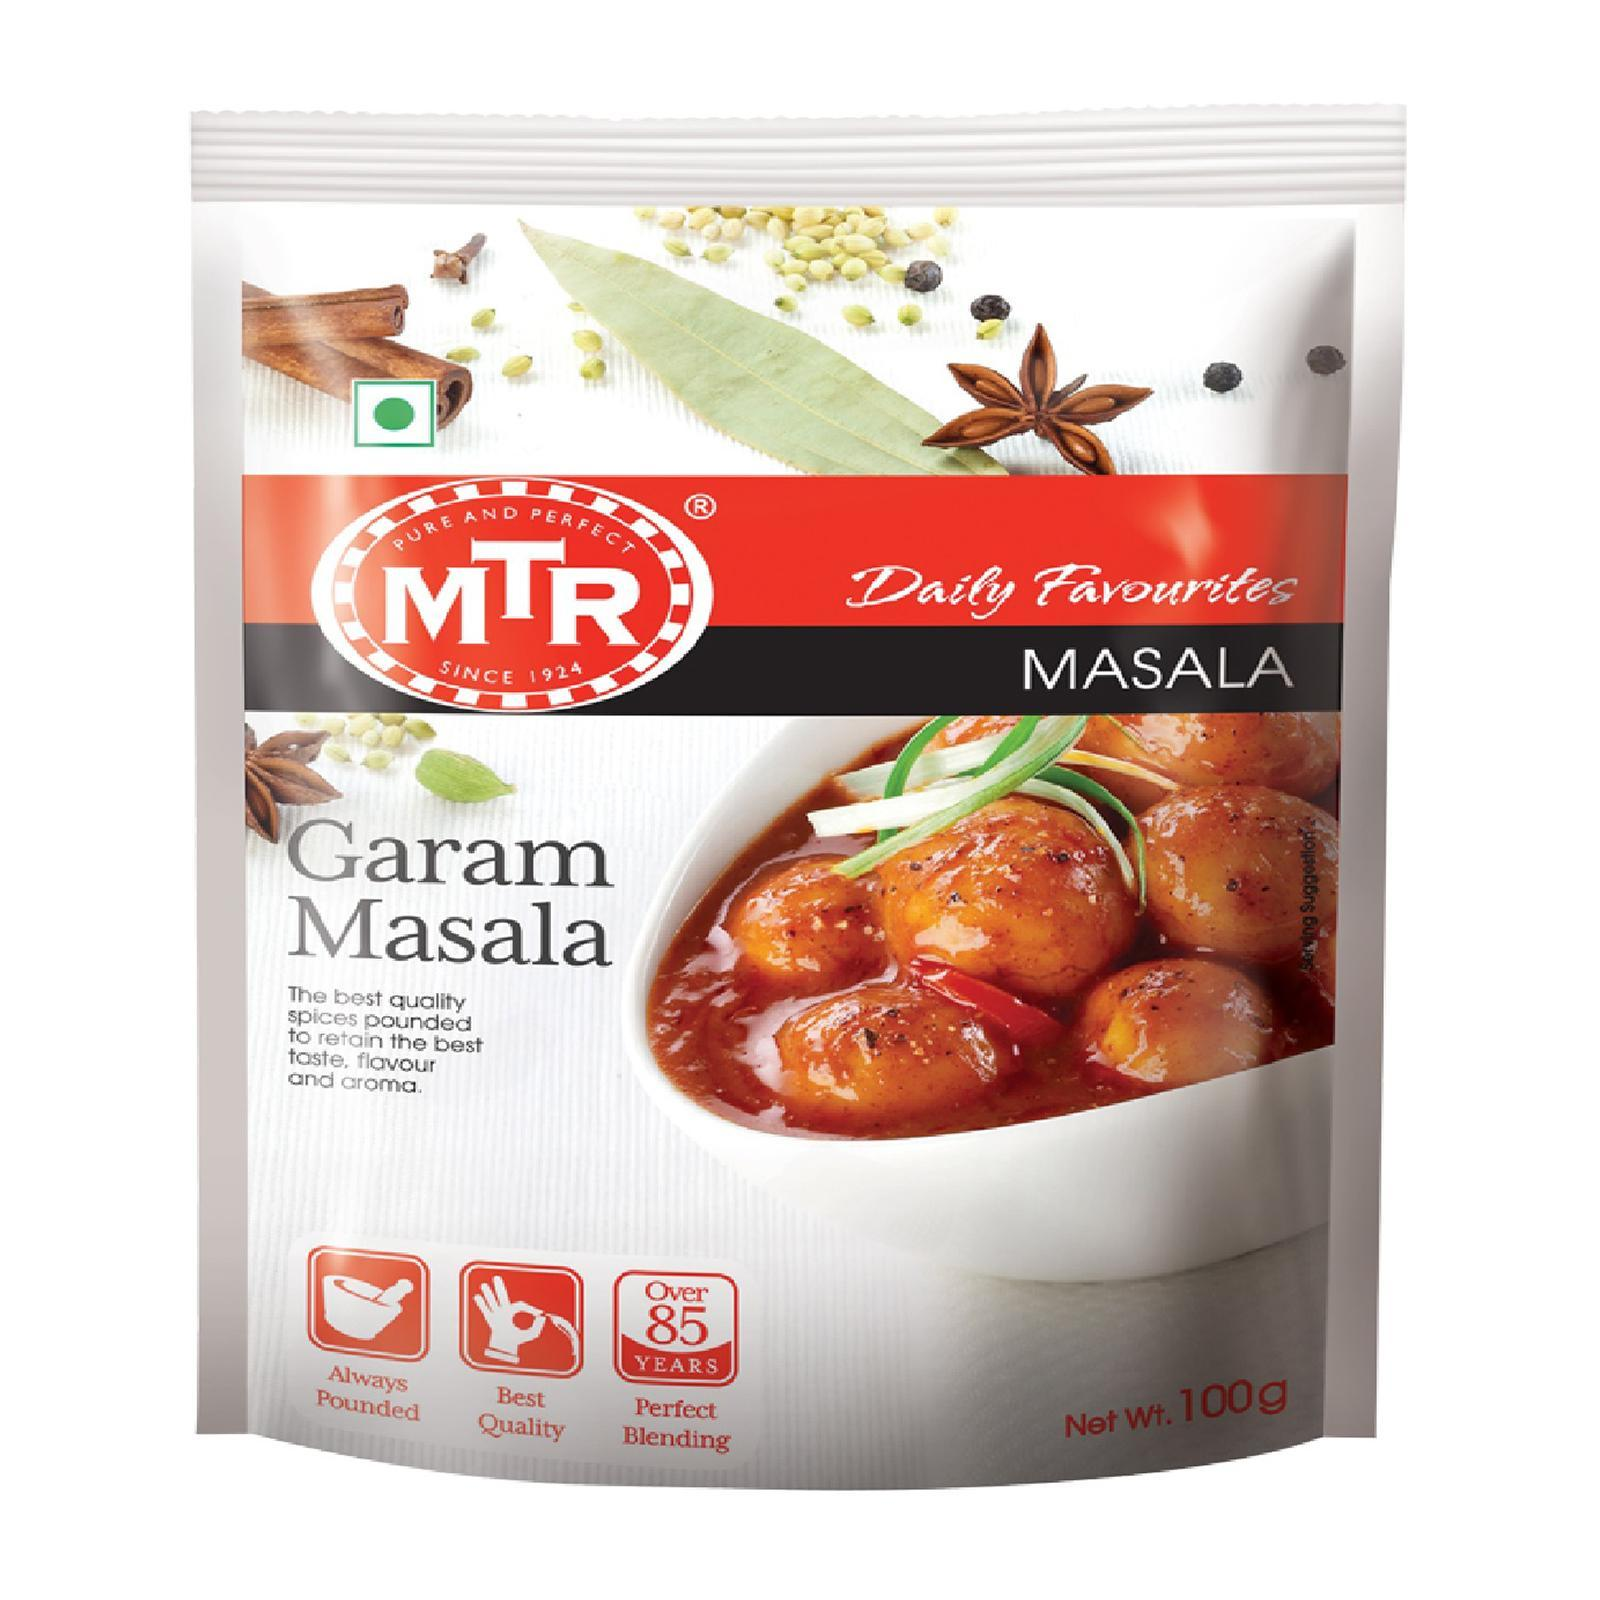 Mtr Garam Masala - 100g X 2 Pack (charges Includes Shipping Fee) By Best Buy Mini Mart.